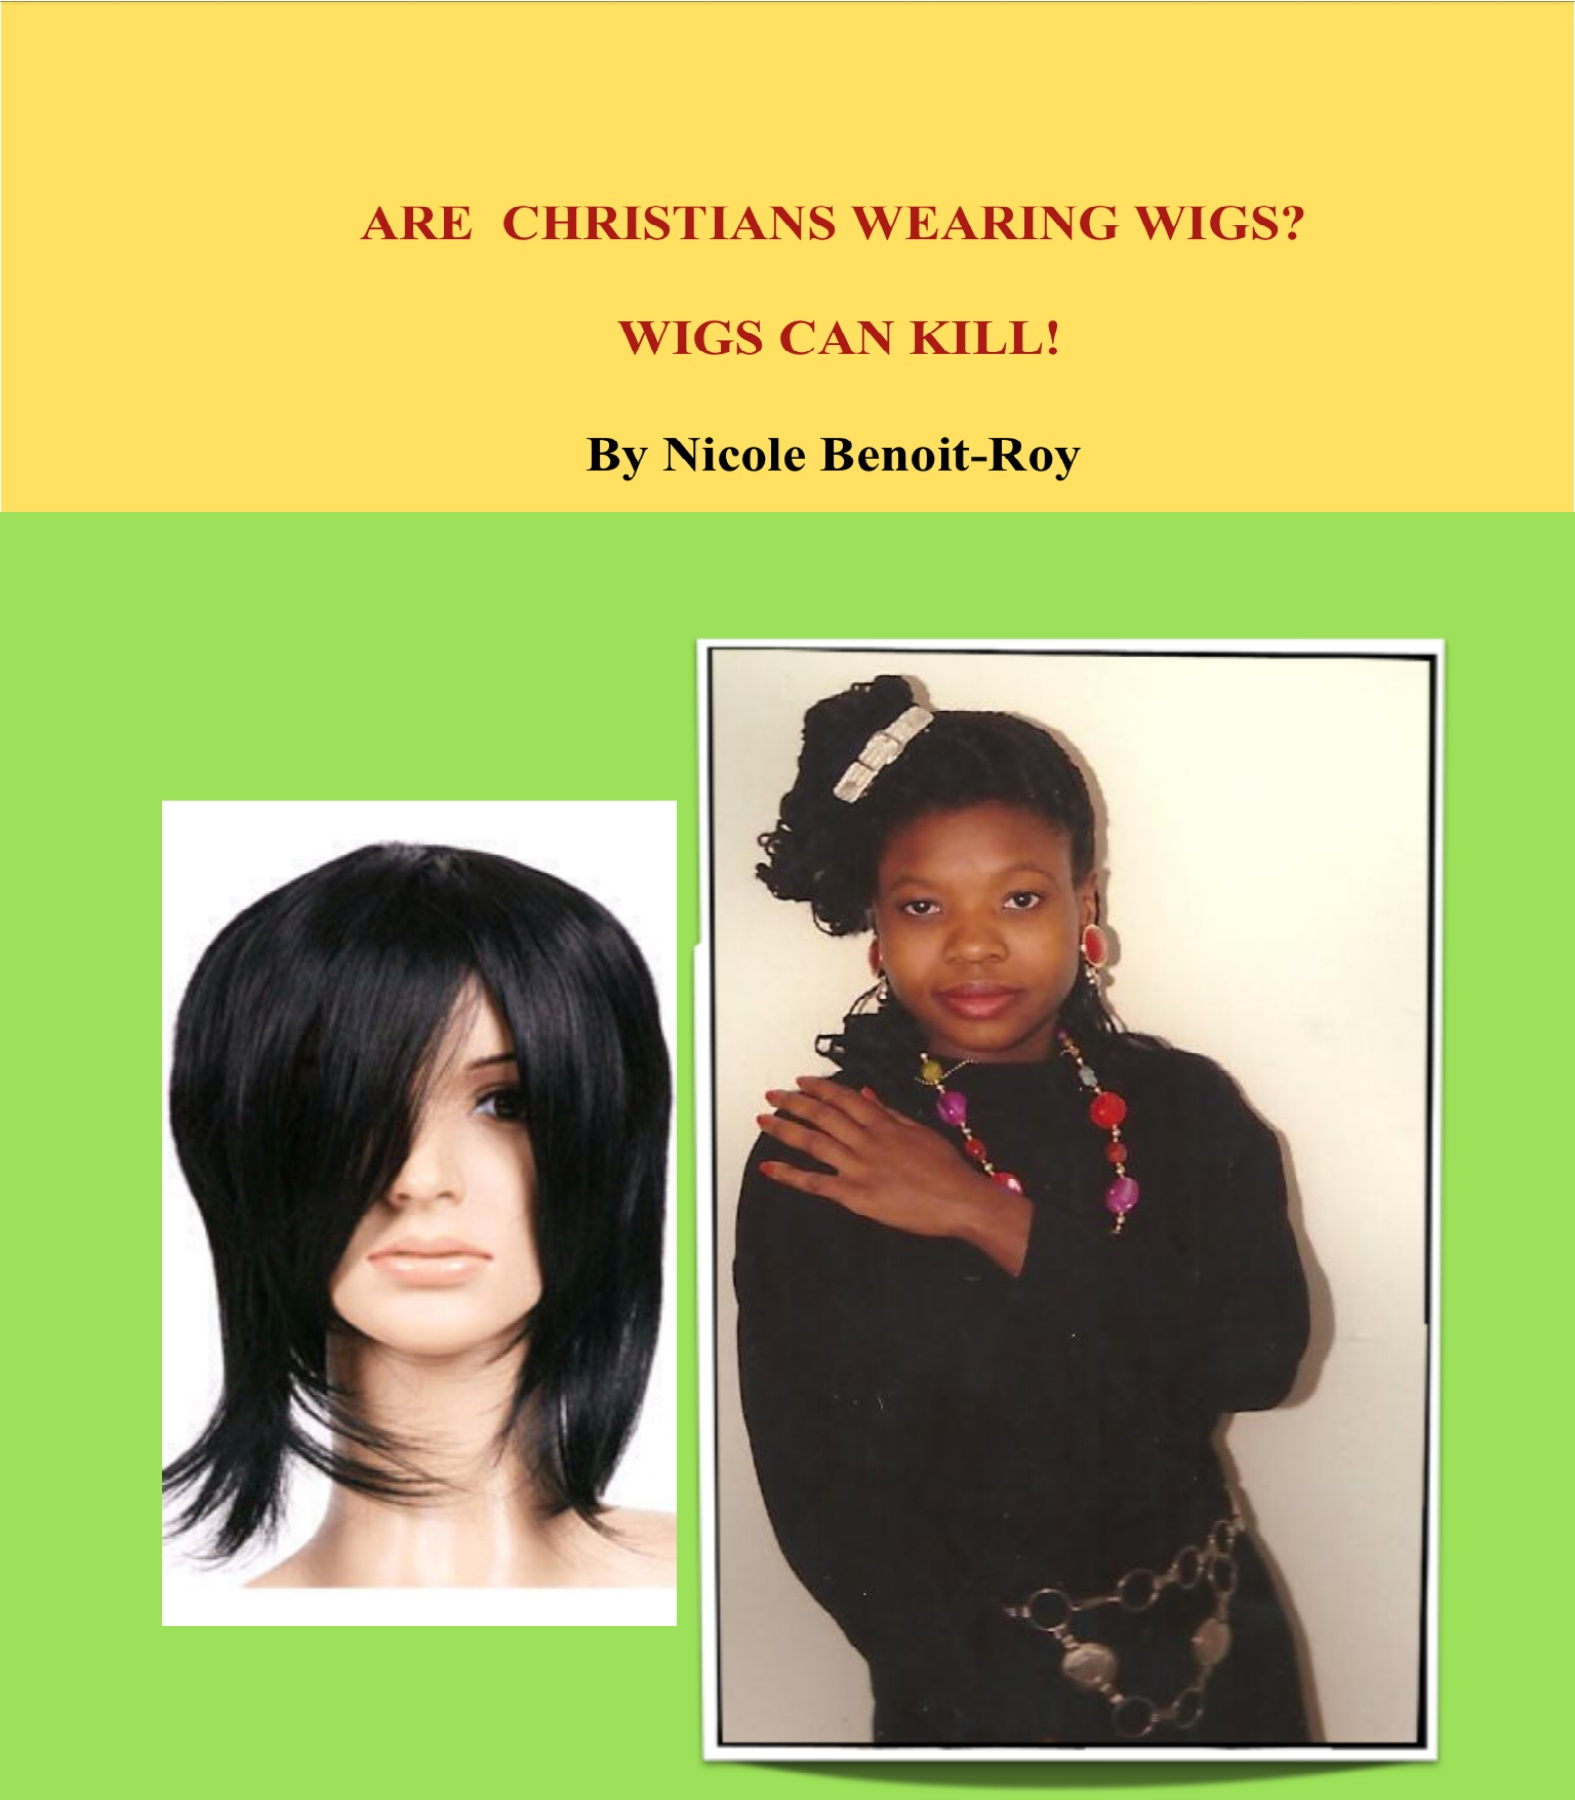 Are Christians wearing wigs